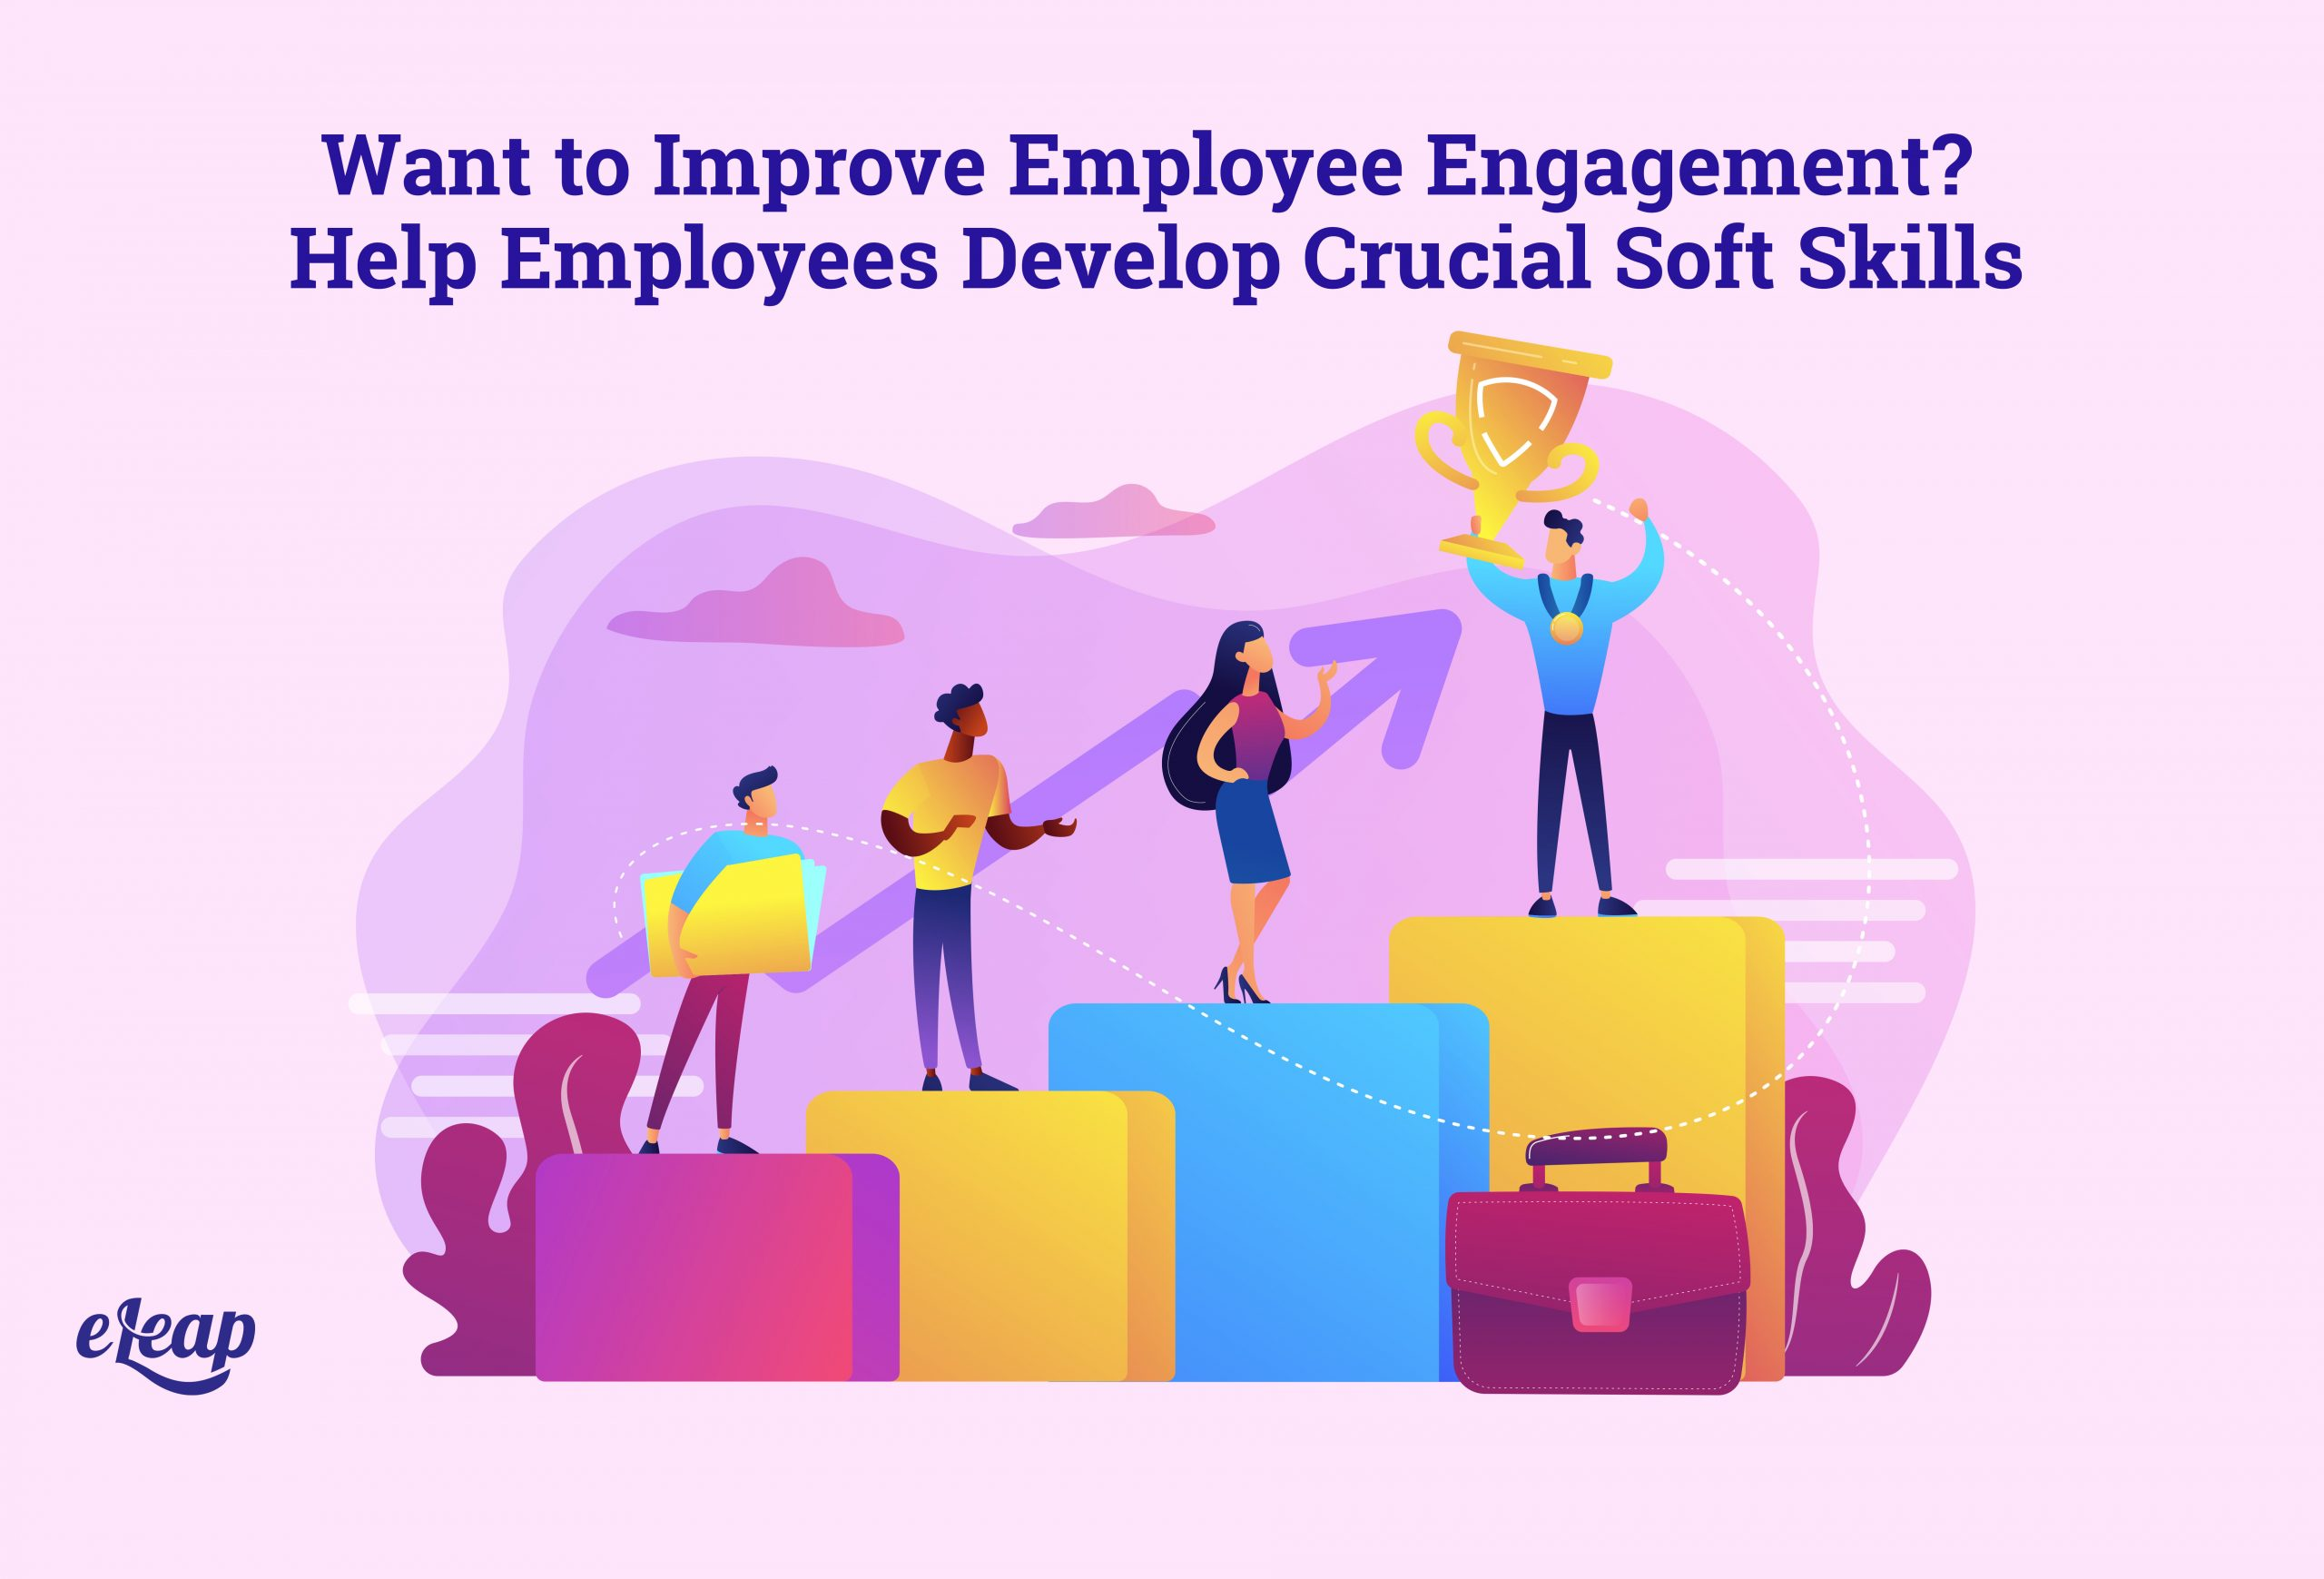 Want to Improve Employee Engagement? Help Employees Develop Crucial Soft Skills